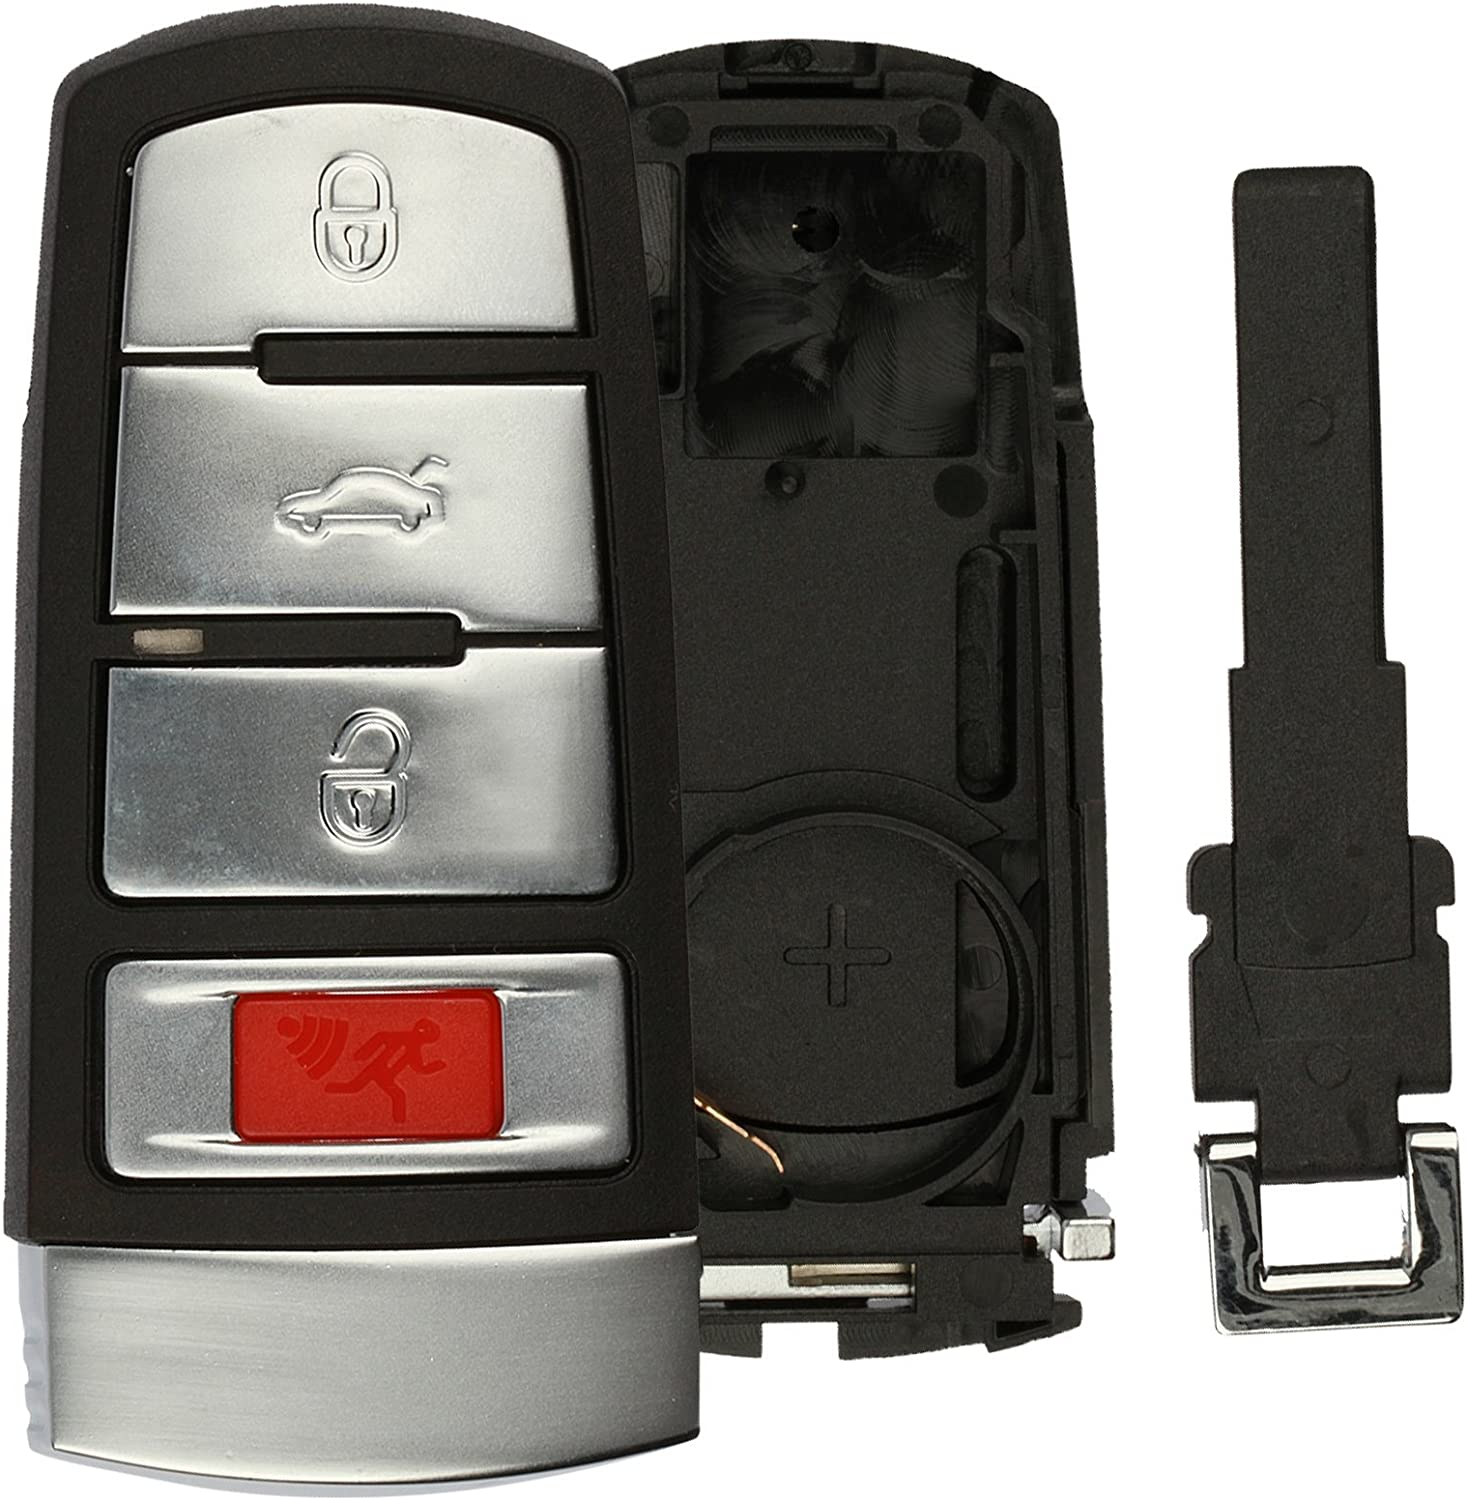 HLO3C0959752N Smart Key Fob Keyless Entry Remote Shell Case /& Pad fits 2006-2010 VW Passat